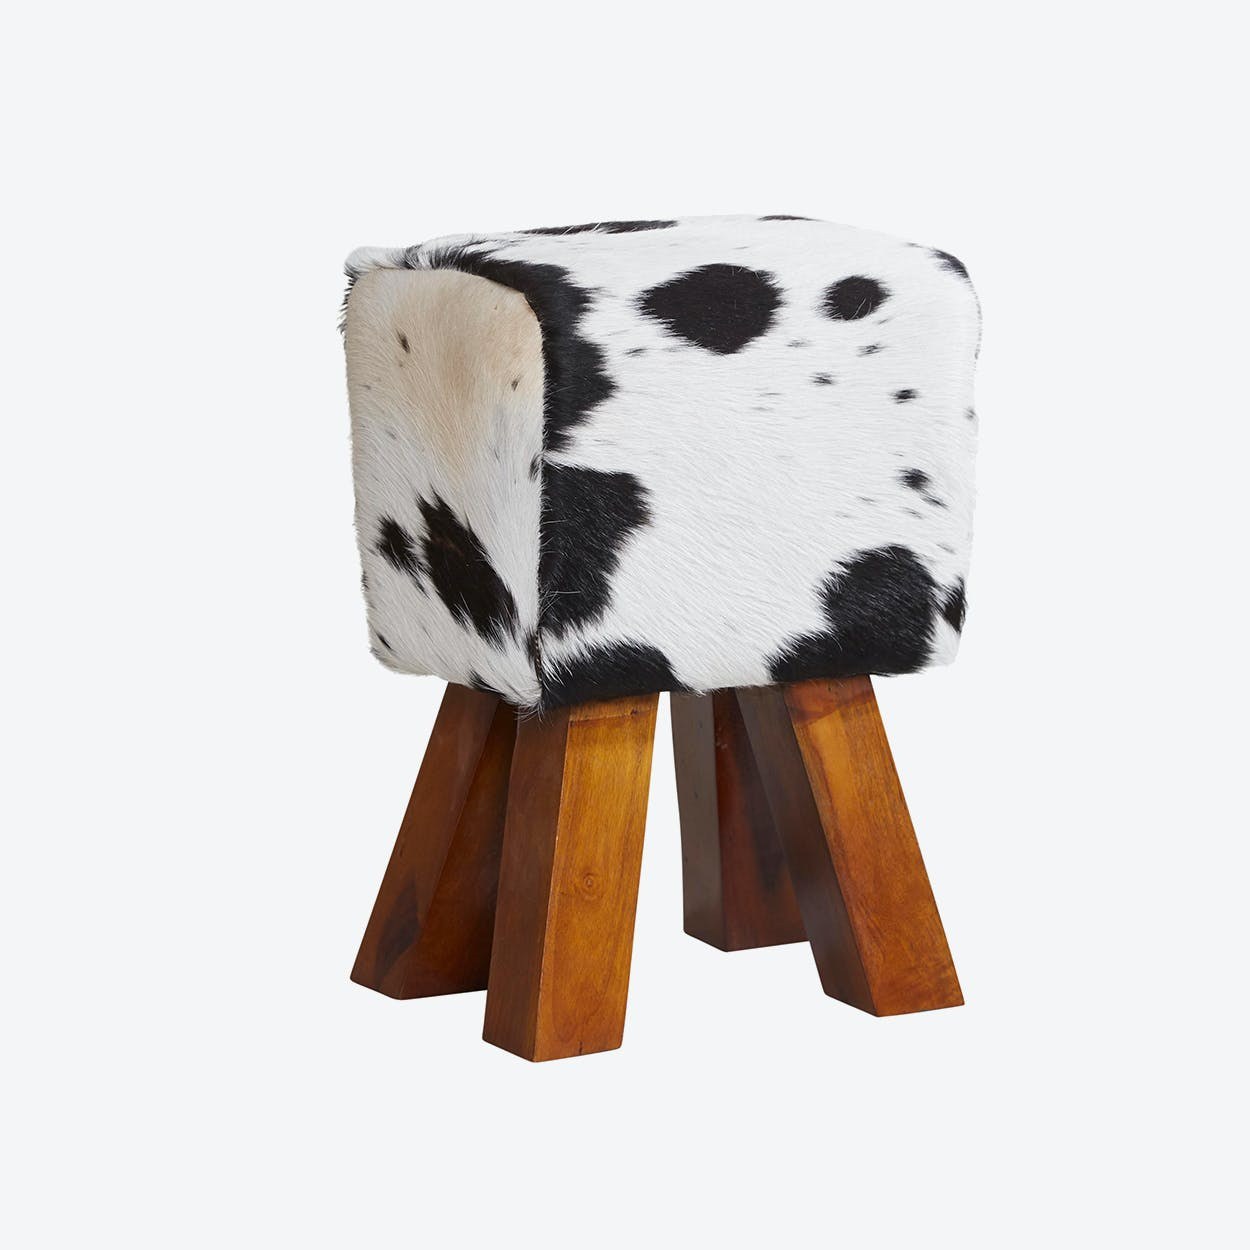 Wooden Cowhide Stool Dark